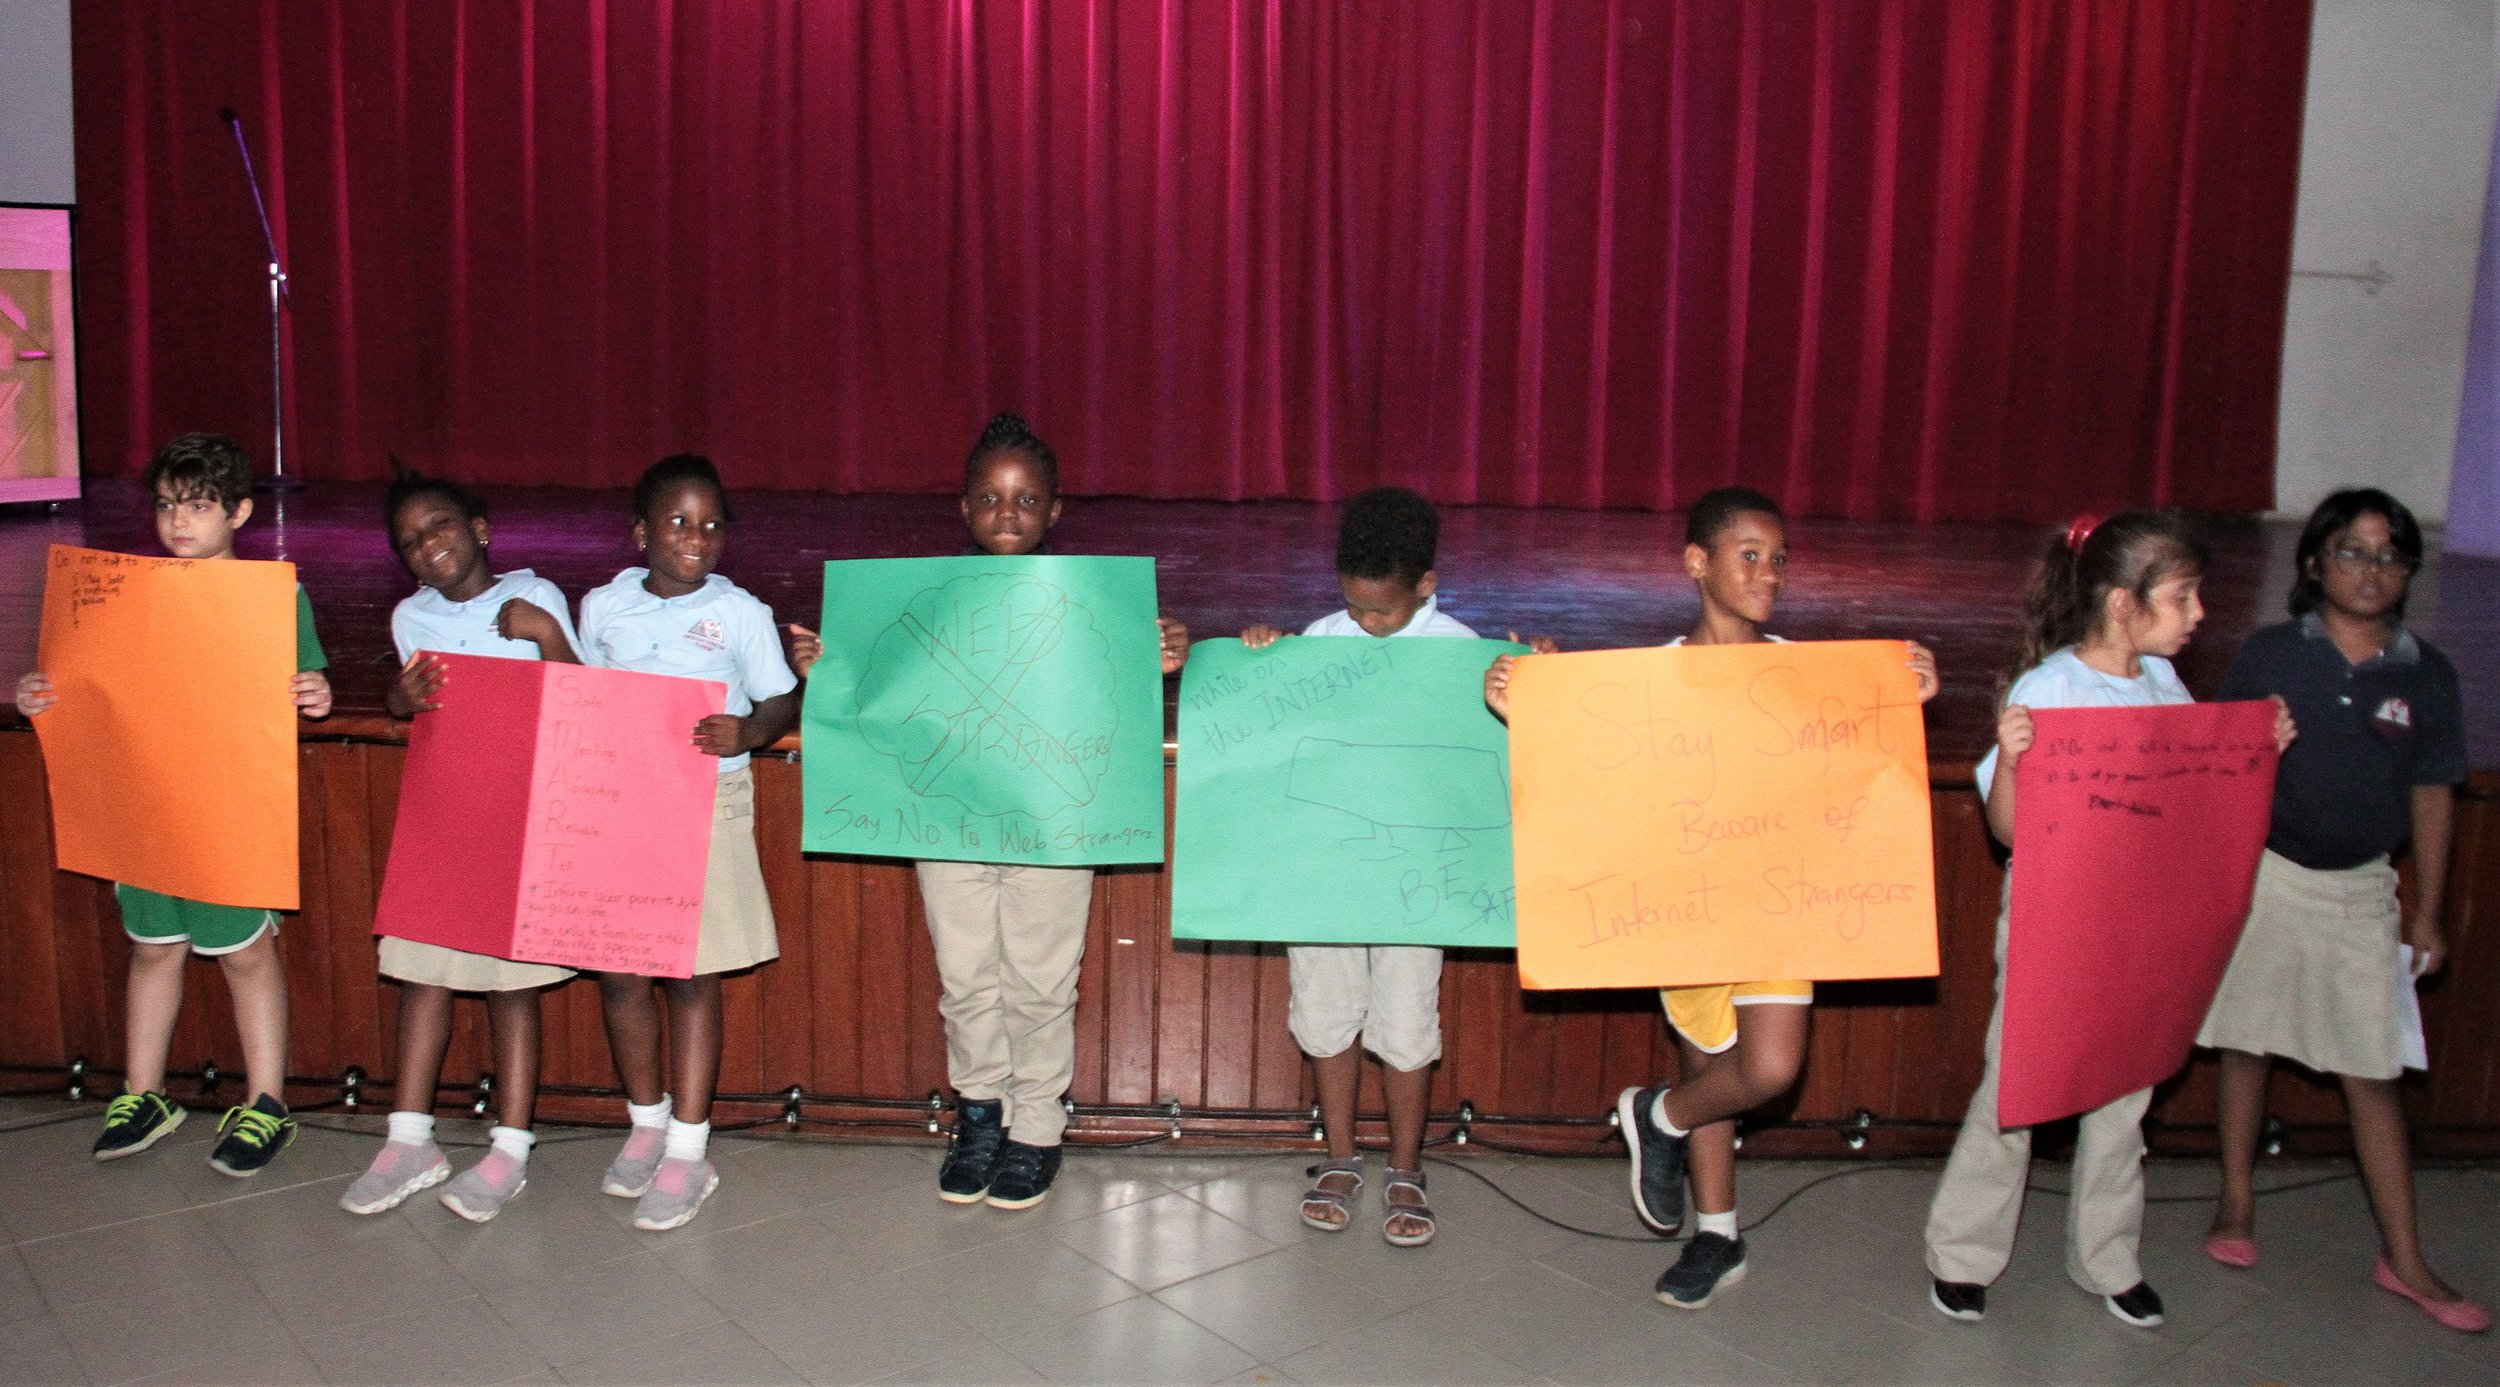 Mrs. Omisore enlightened students about Online Safety during Junior School Assembly this week. Parents also brainstormed and came up with an Online Safety Poster!